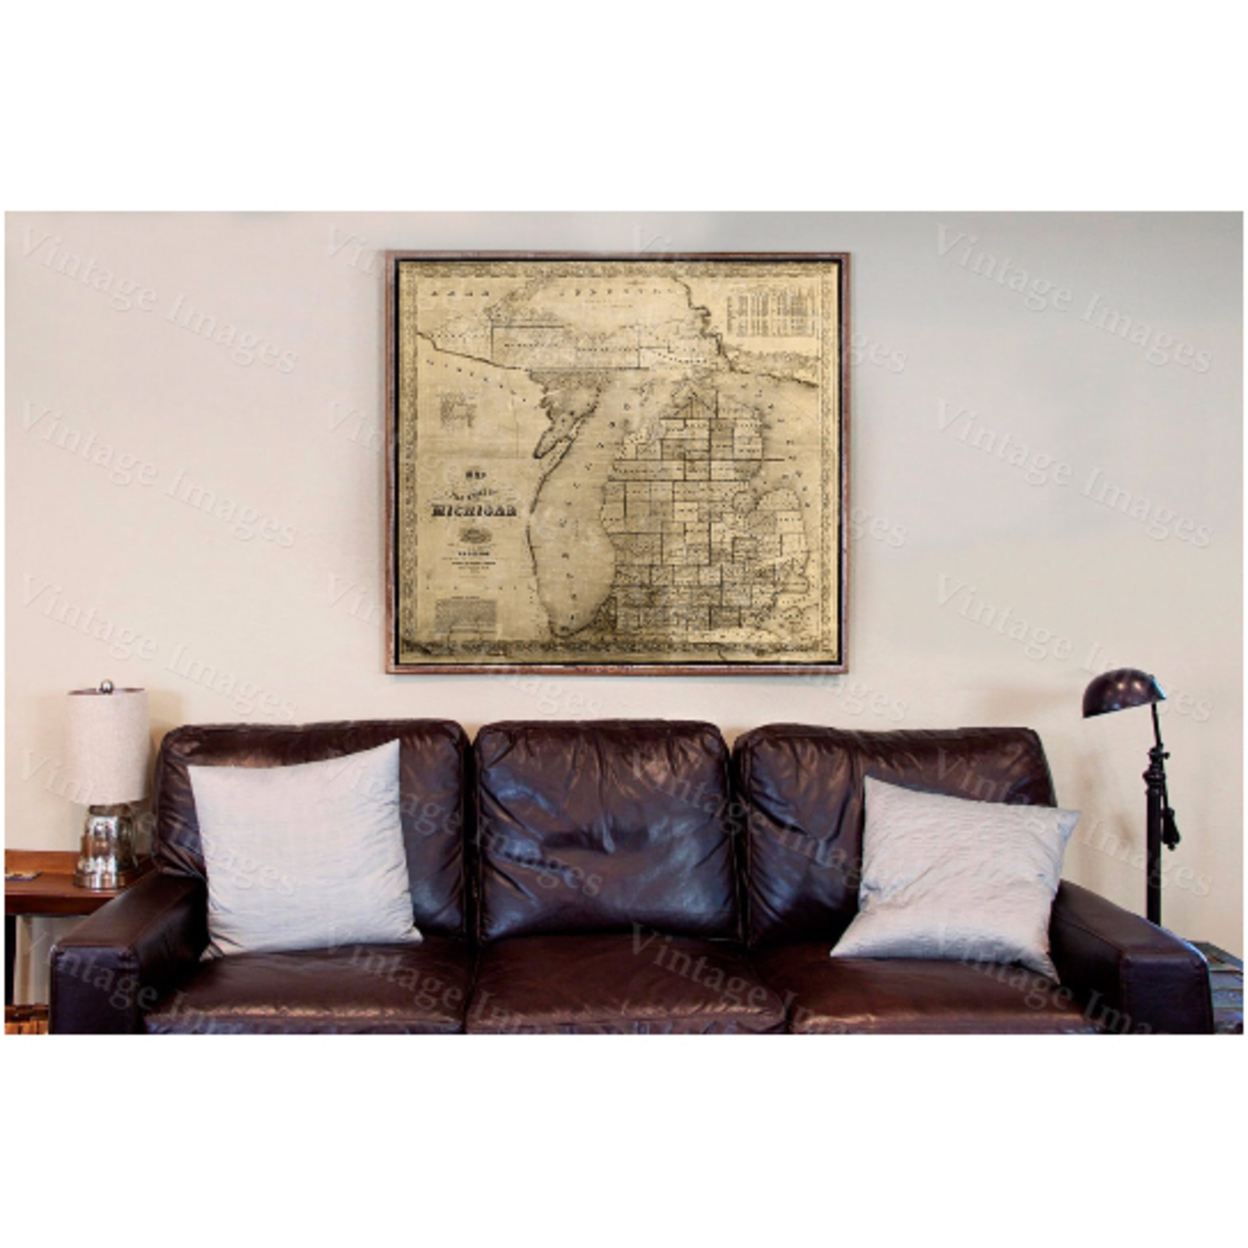 Home decor brand vintage imagery the best prices for home - Vintage inspired wall art ...